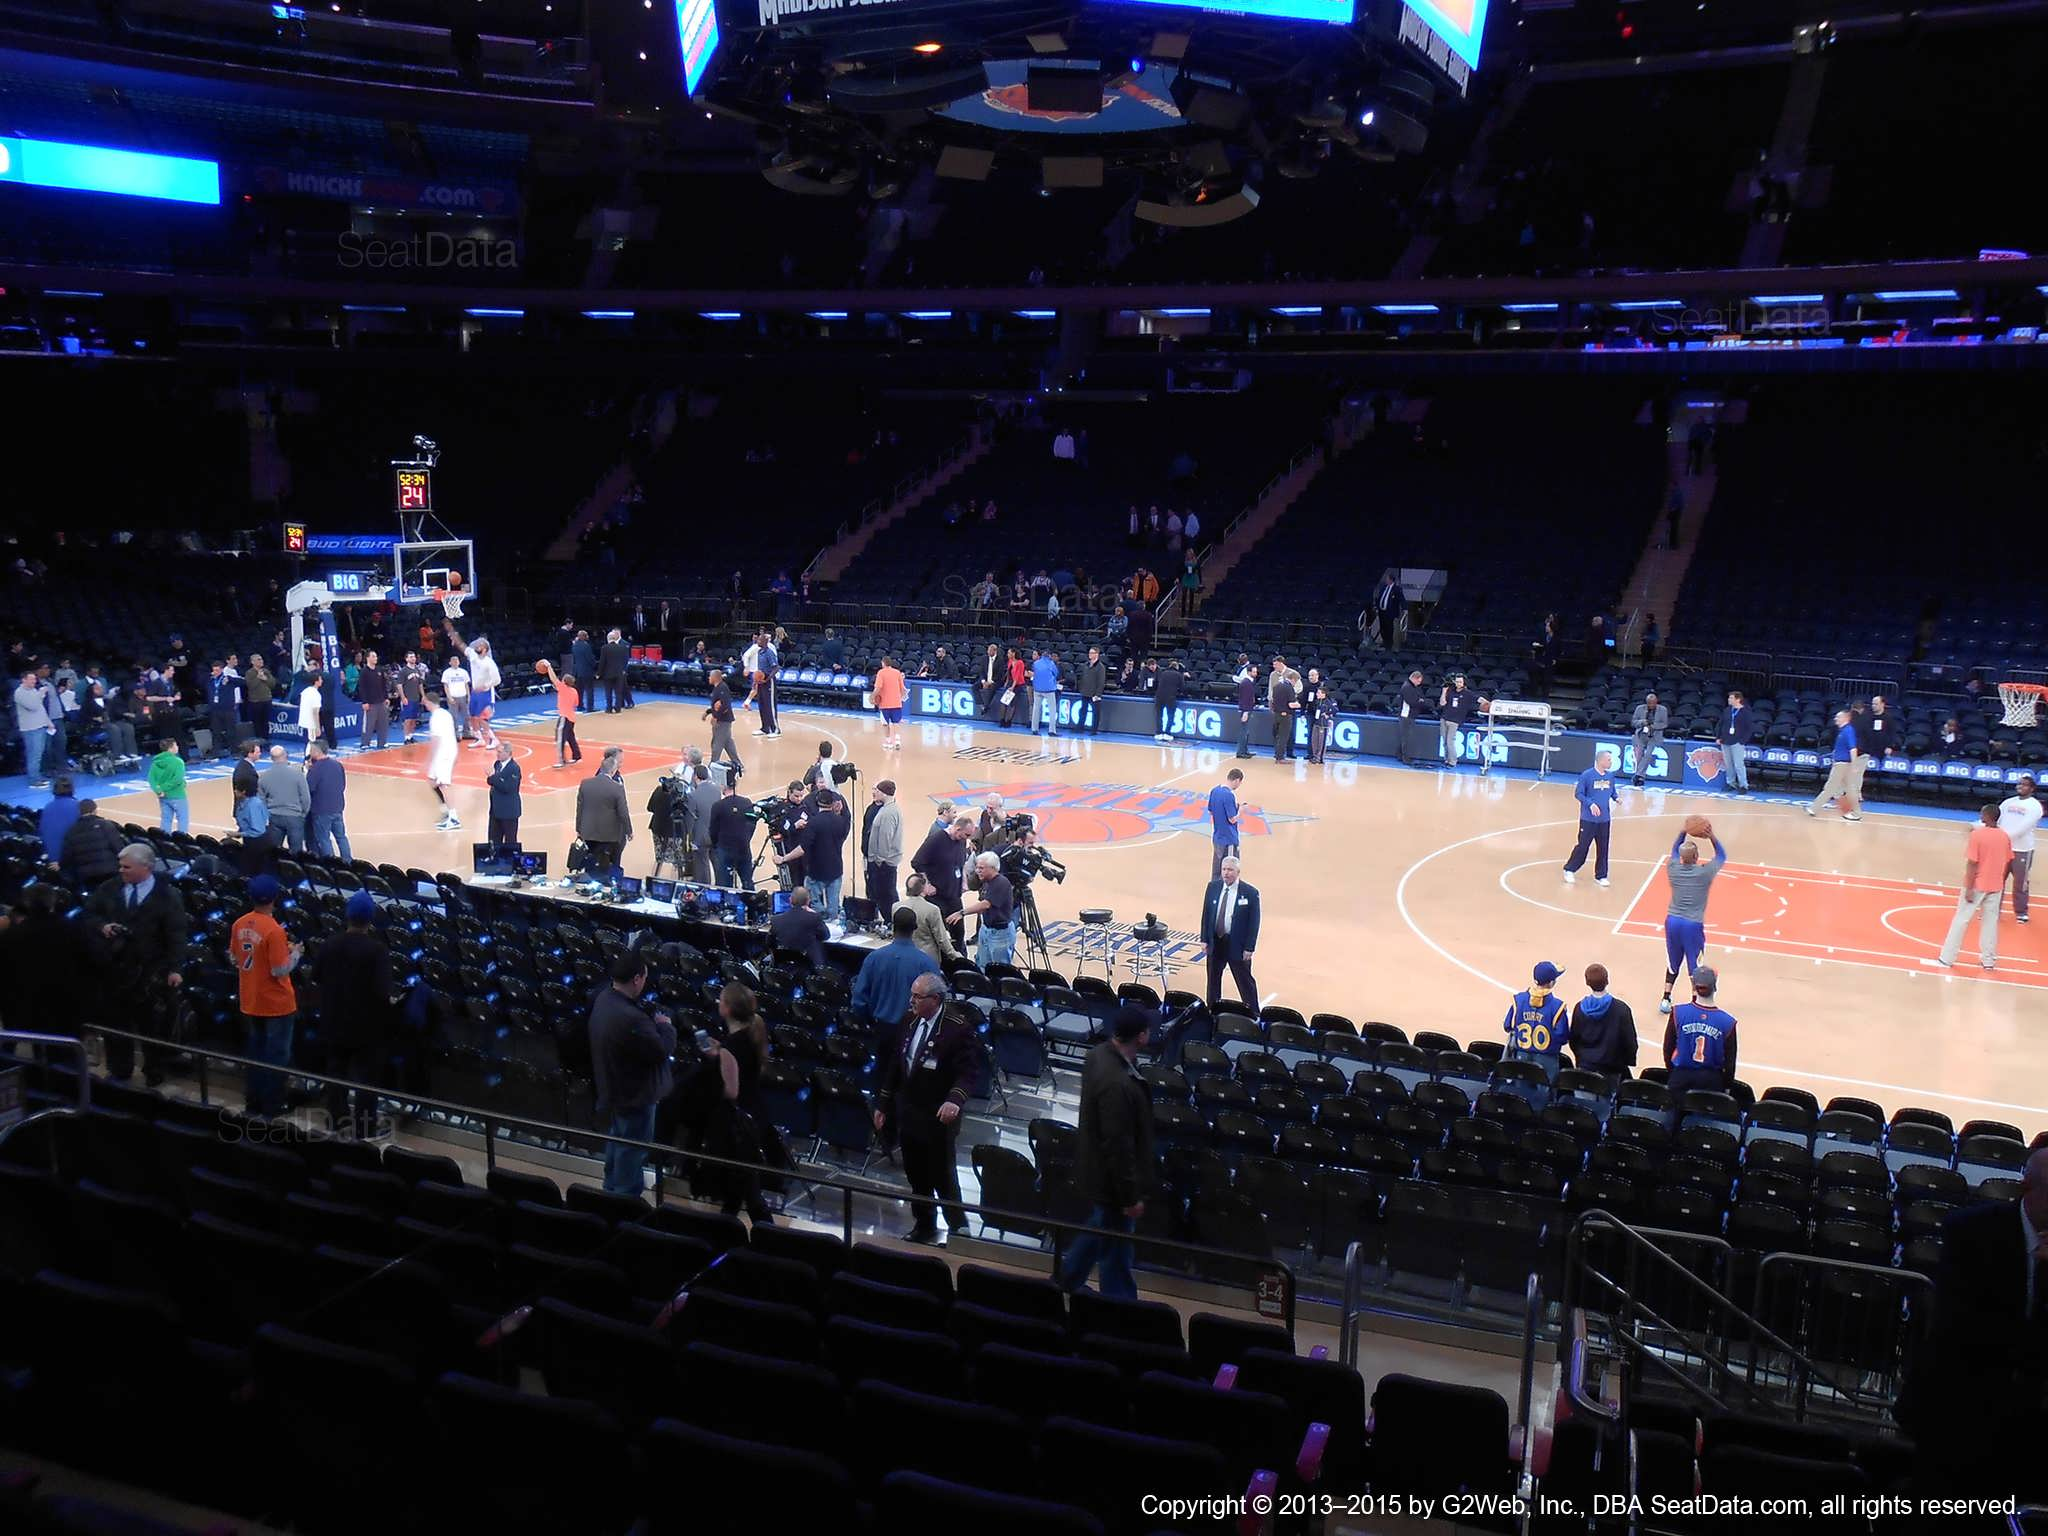 Seat view from section 118 at Madison Square Garden, home of the New York Knicks.